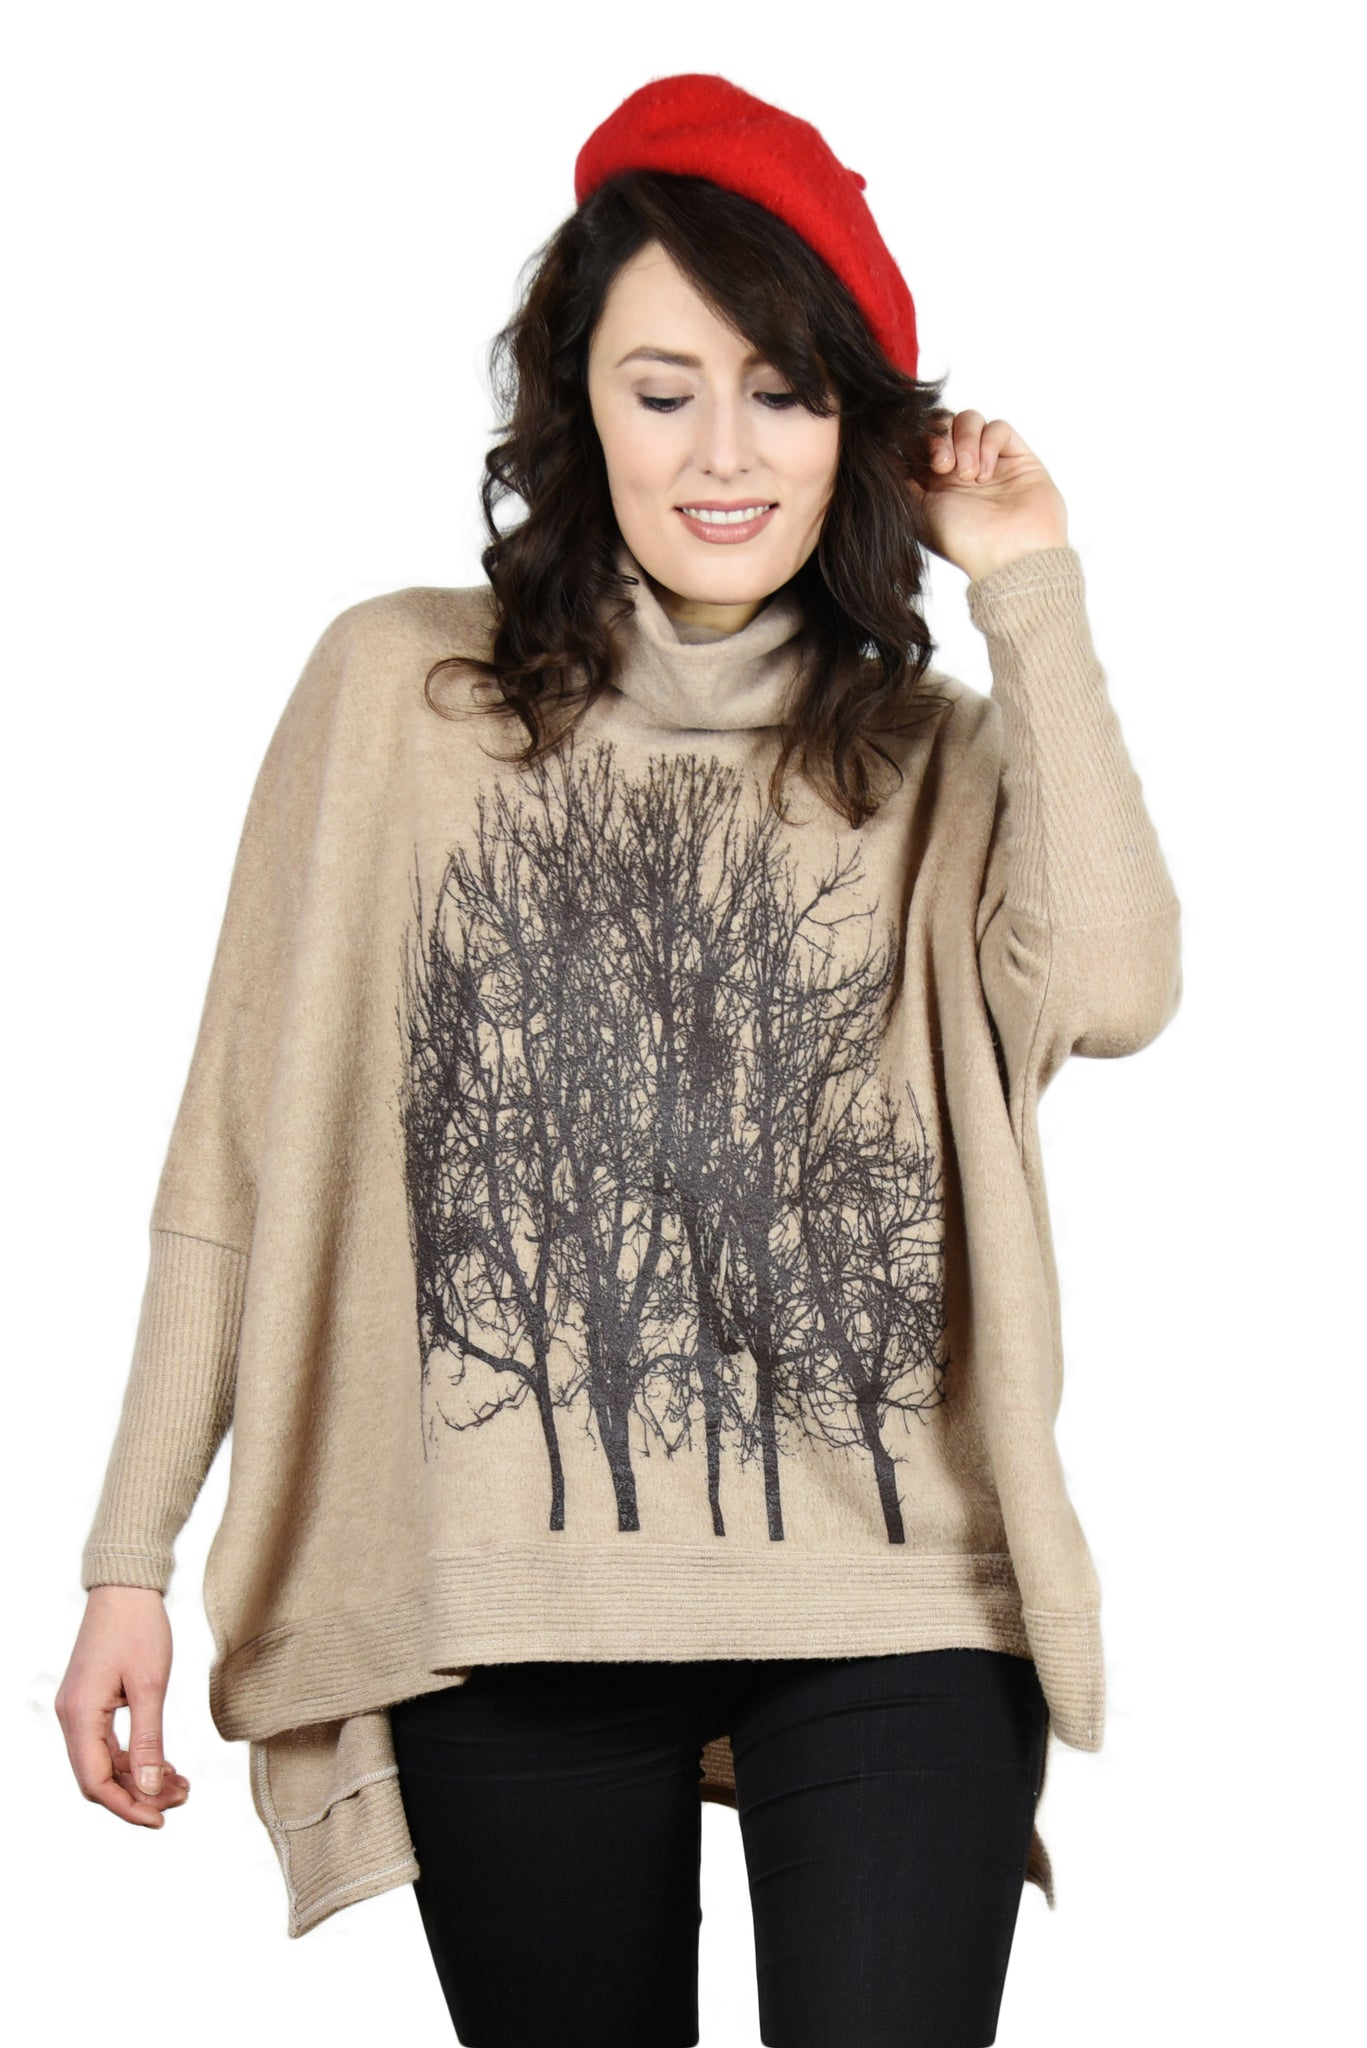 Fairytale Trees Poncho with Sleeves Chocolate